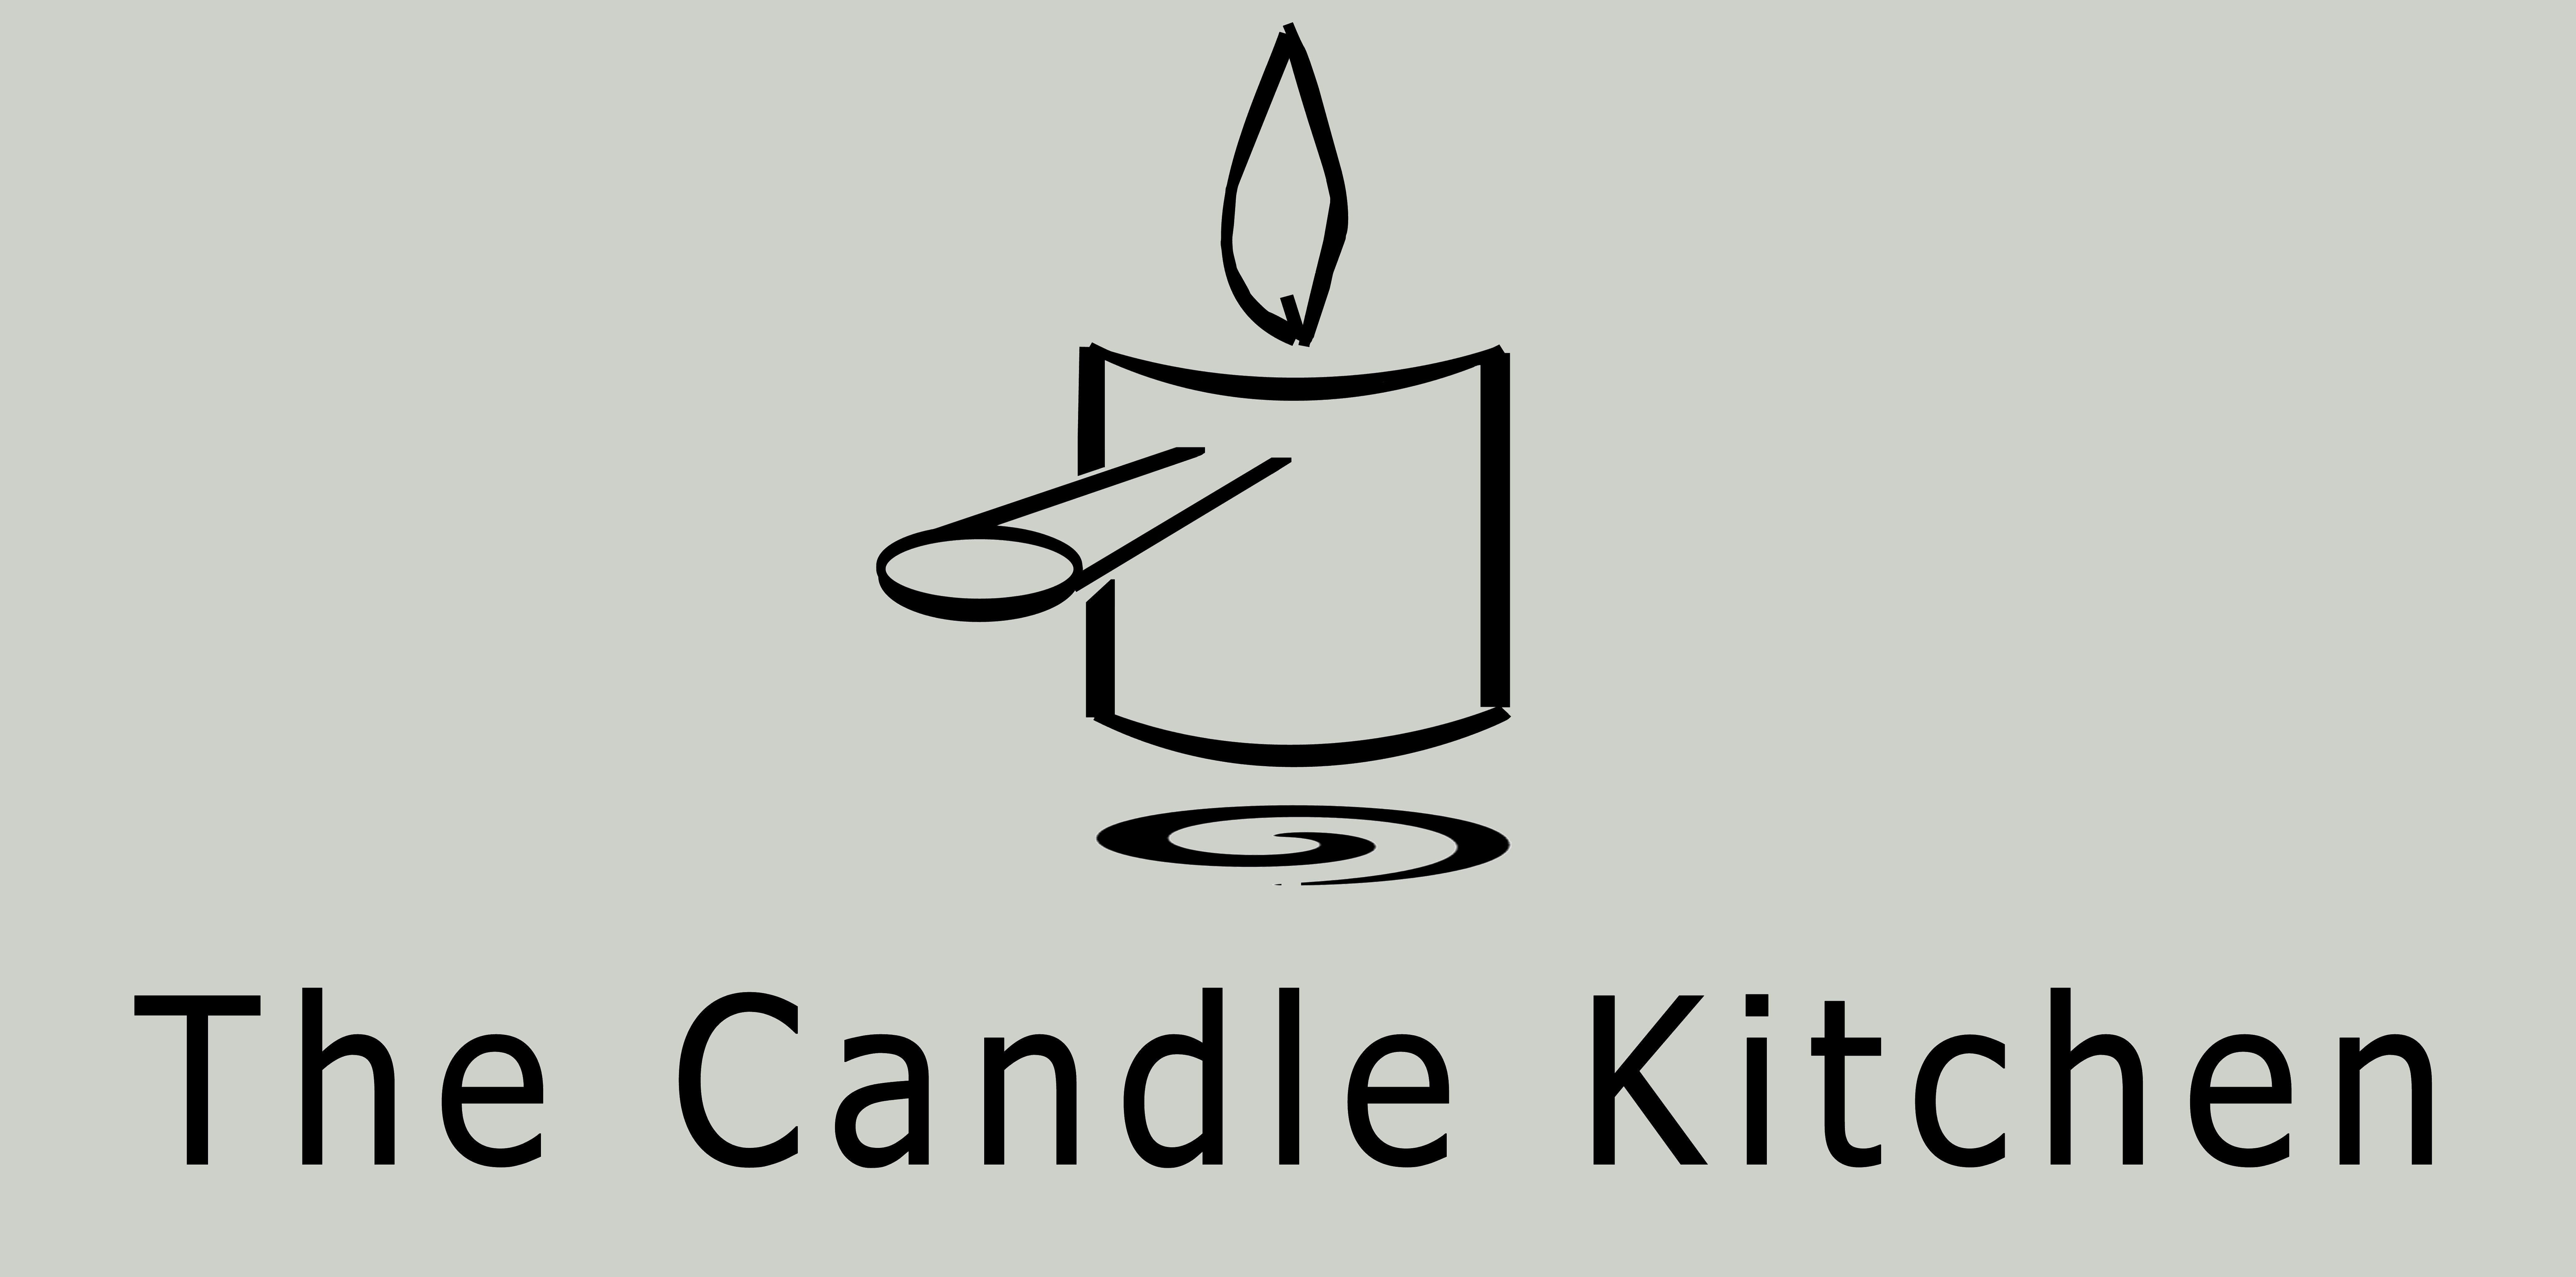 The Candle Kitchen